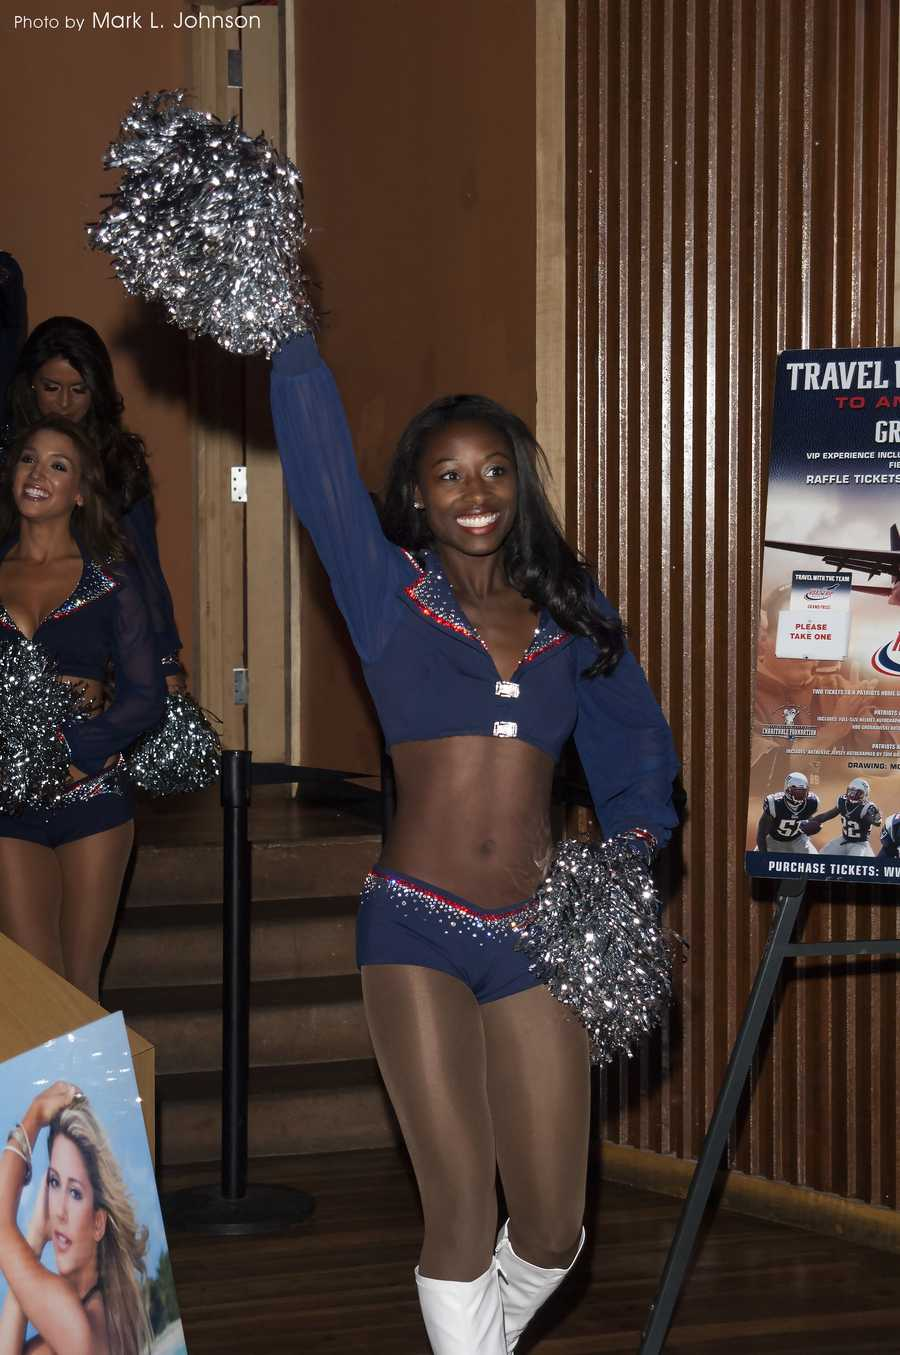 The New England Patriots cheerleadersshow off their new uniforms that were designed by Waltham's own Sondra Celli.